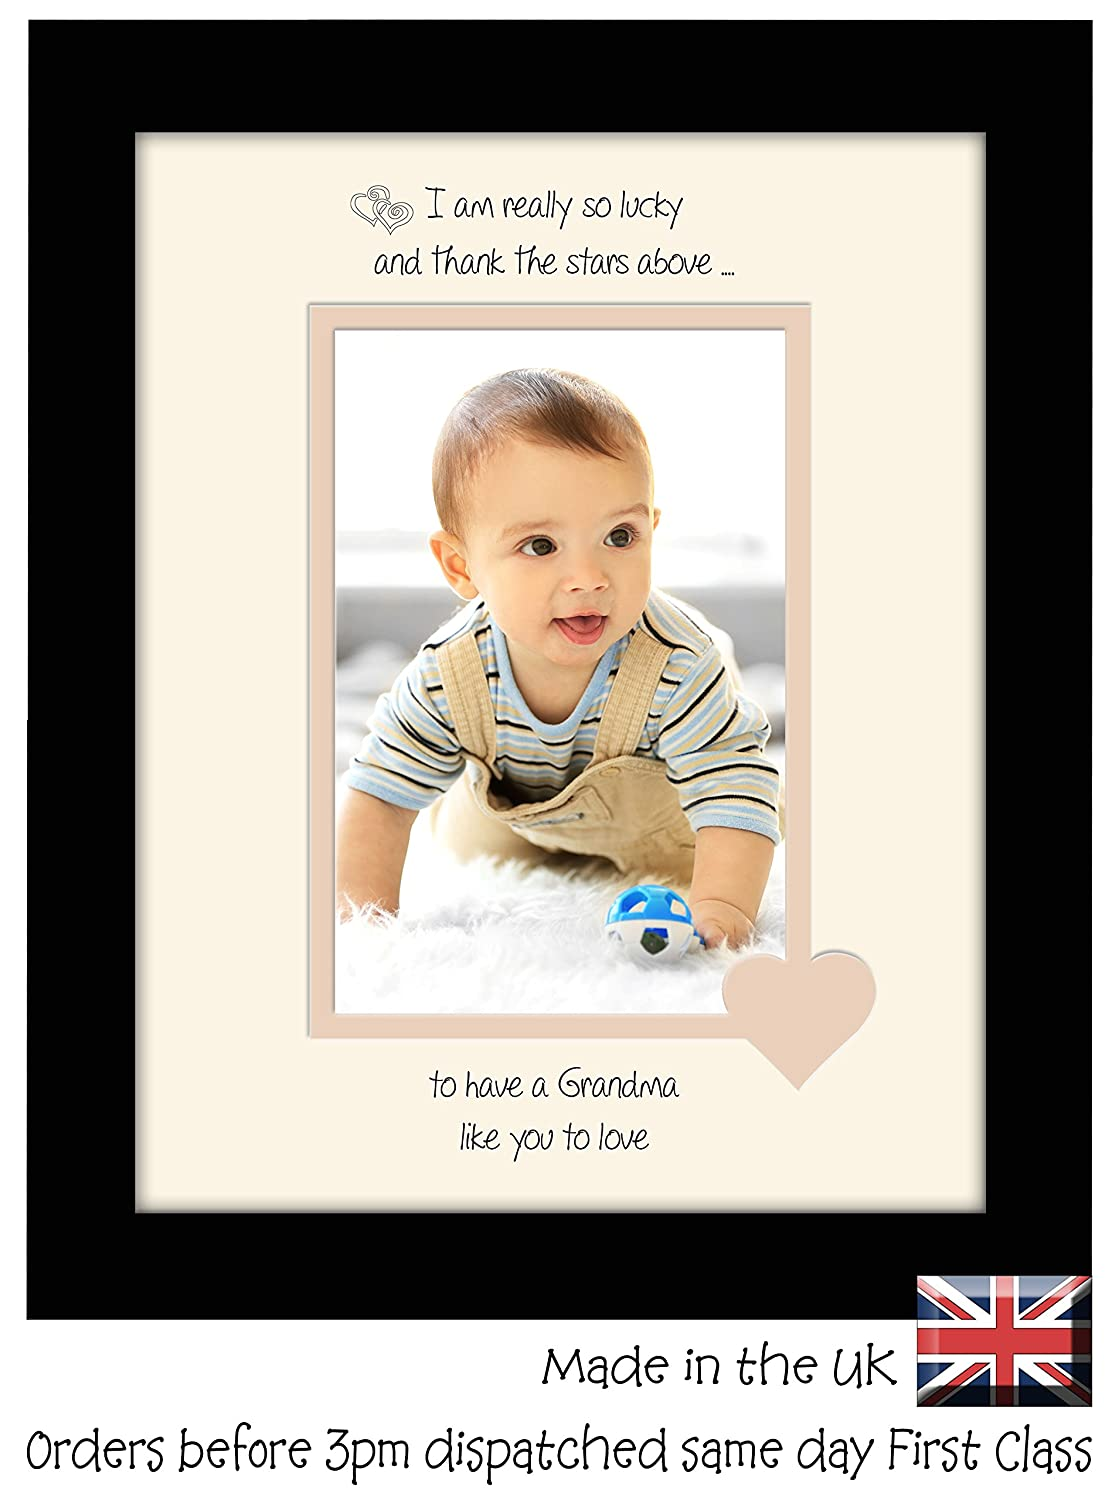 Grandma Photo Frame I Thank the Stars Portrait 1065F Double Mounted Quality Gift (Black Finish Frame Cream Mount Beige Inside) Photos in a Word